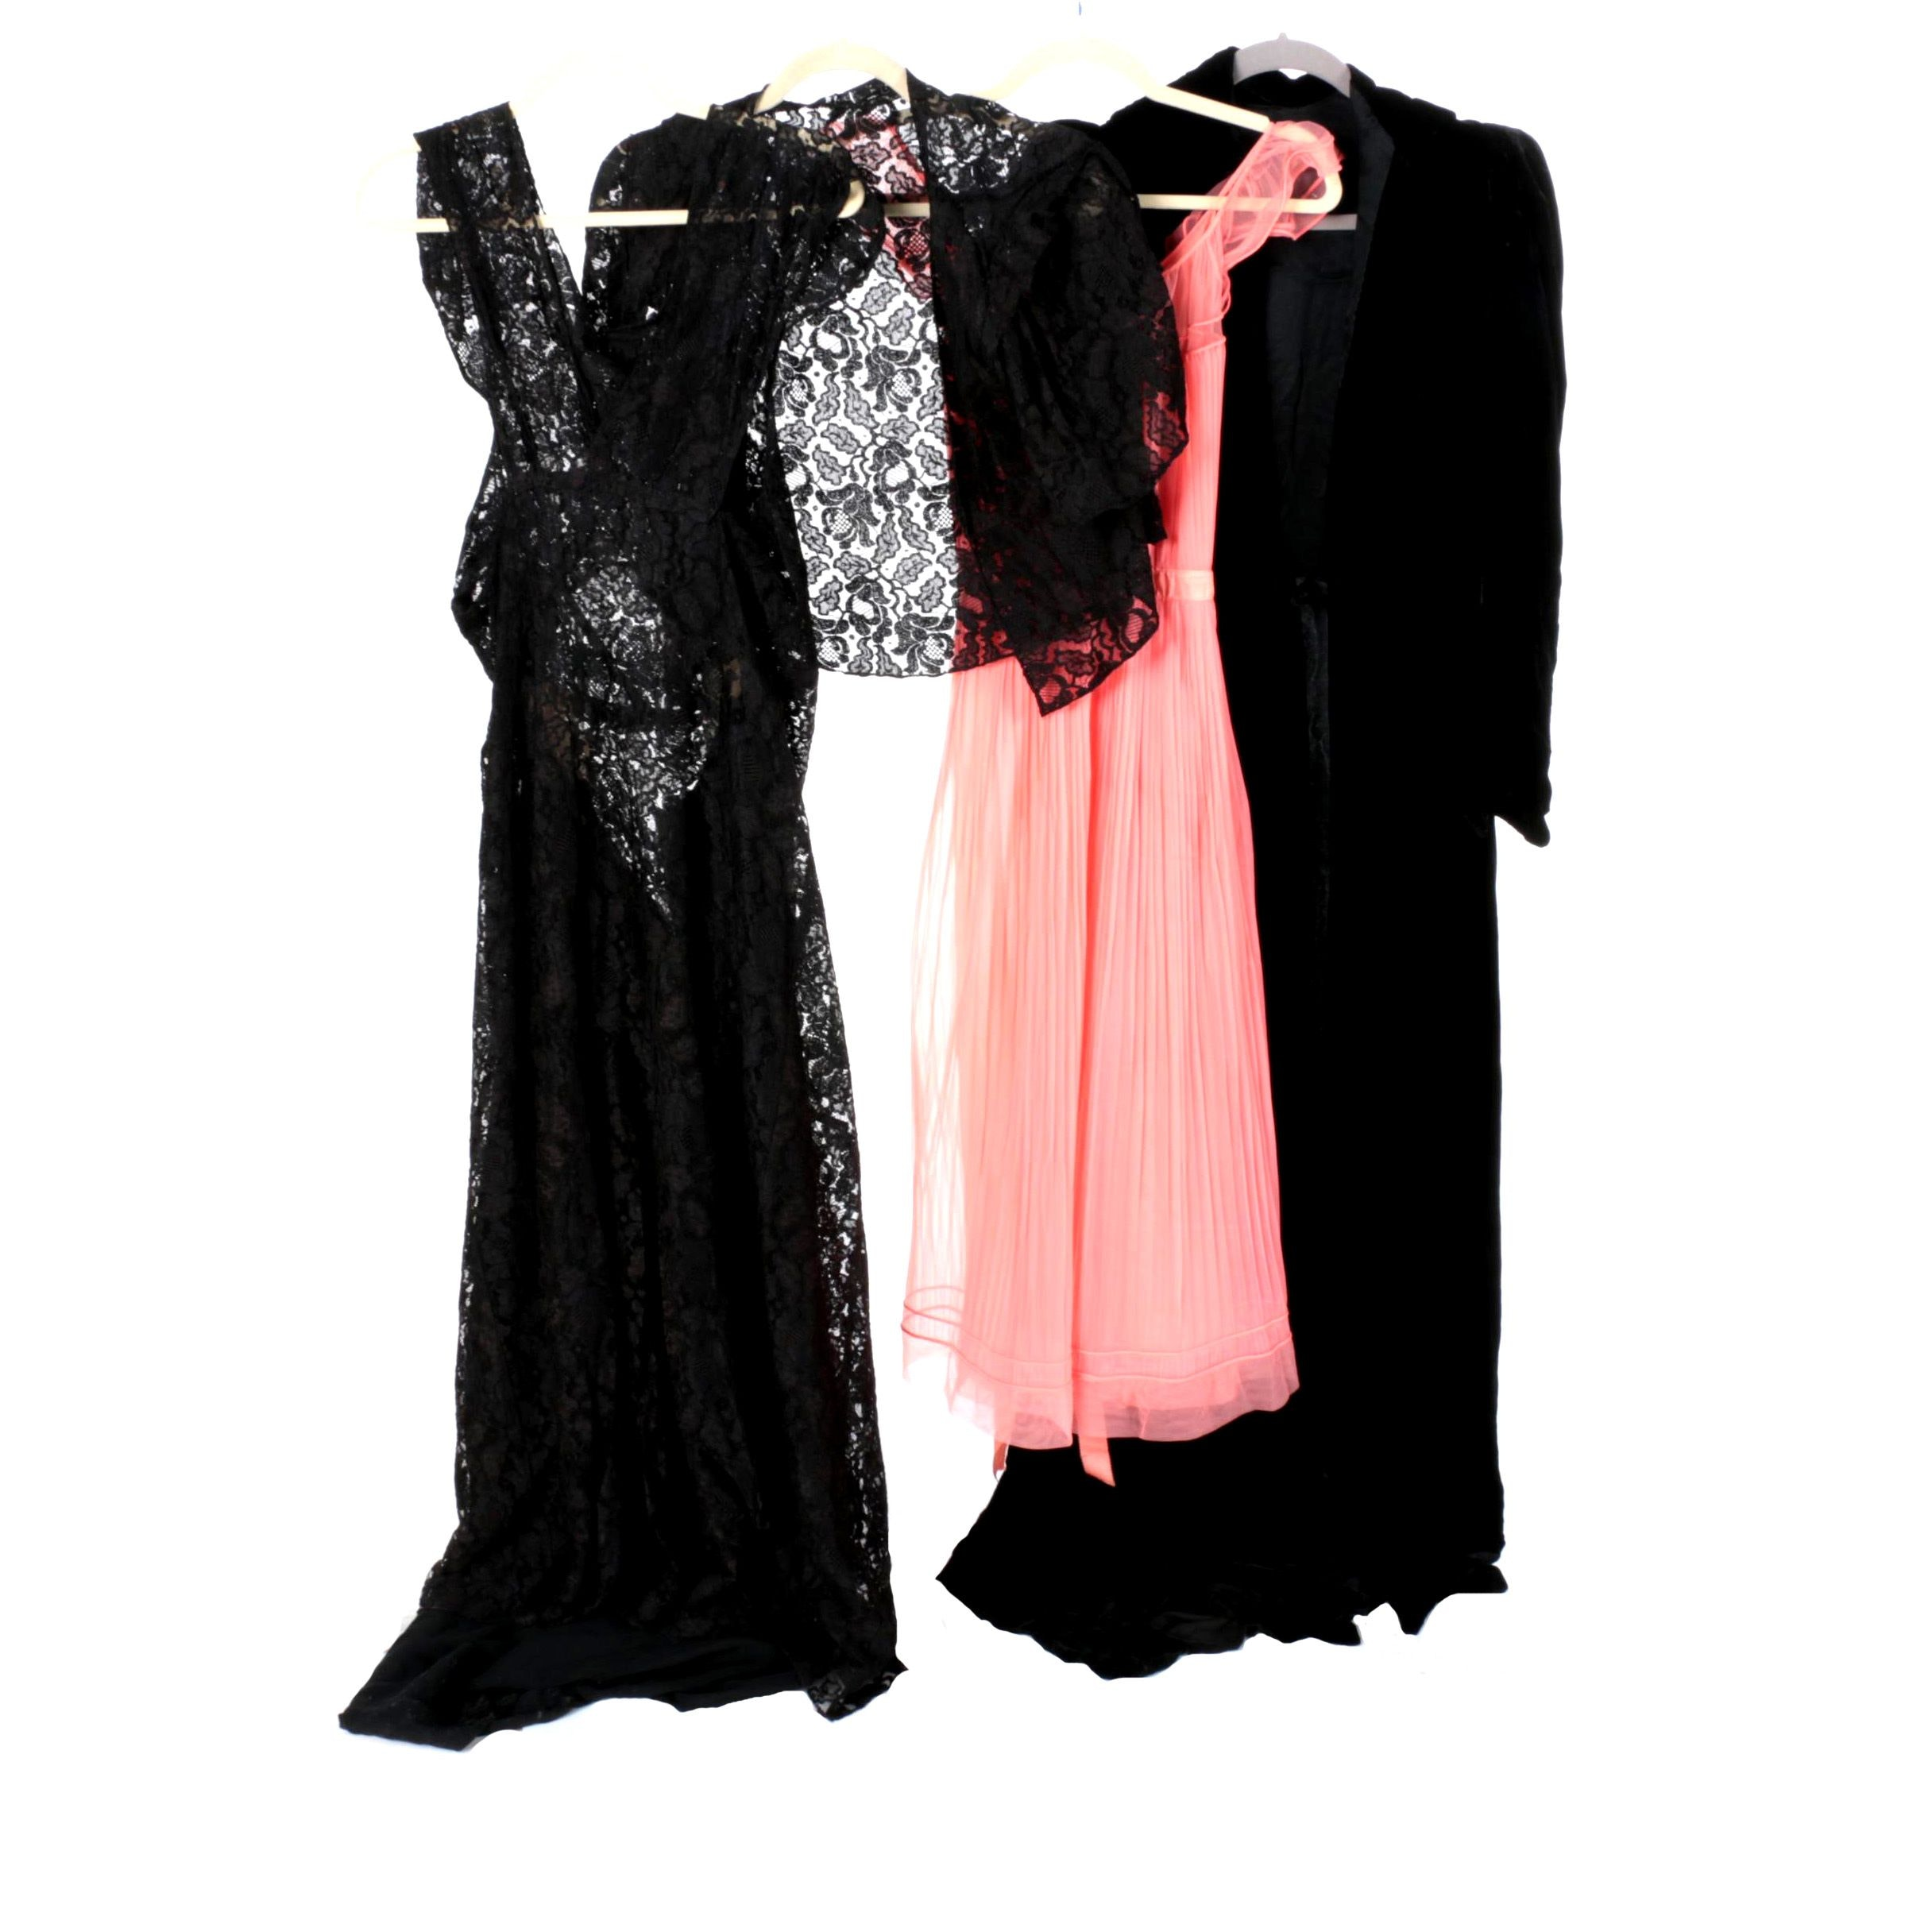 Women's Vintage Gowns